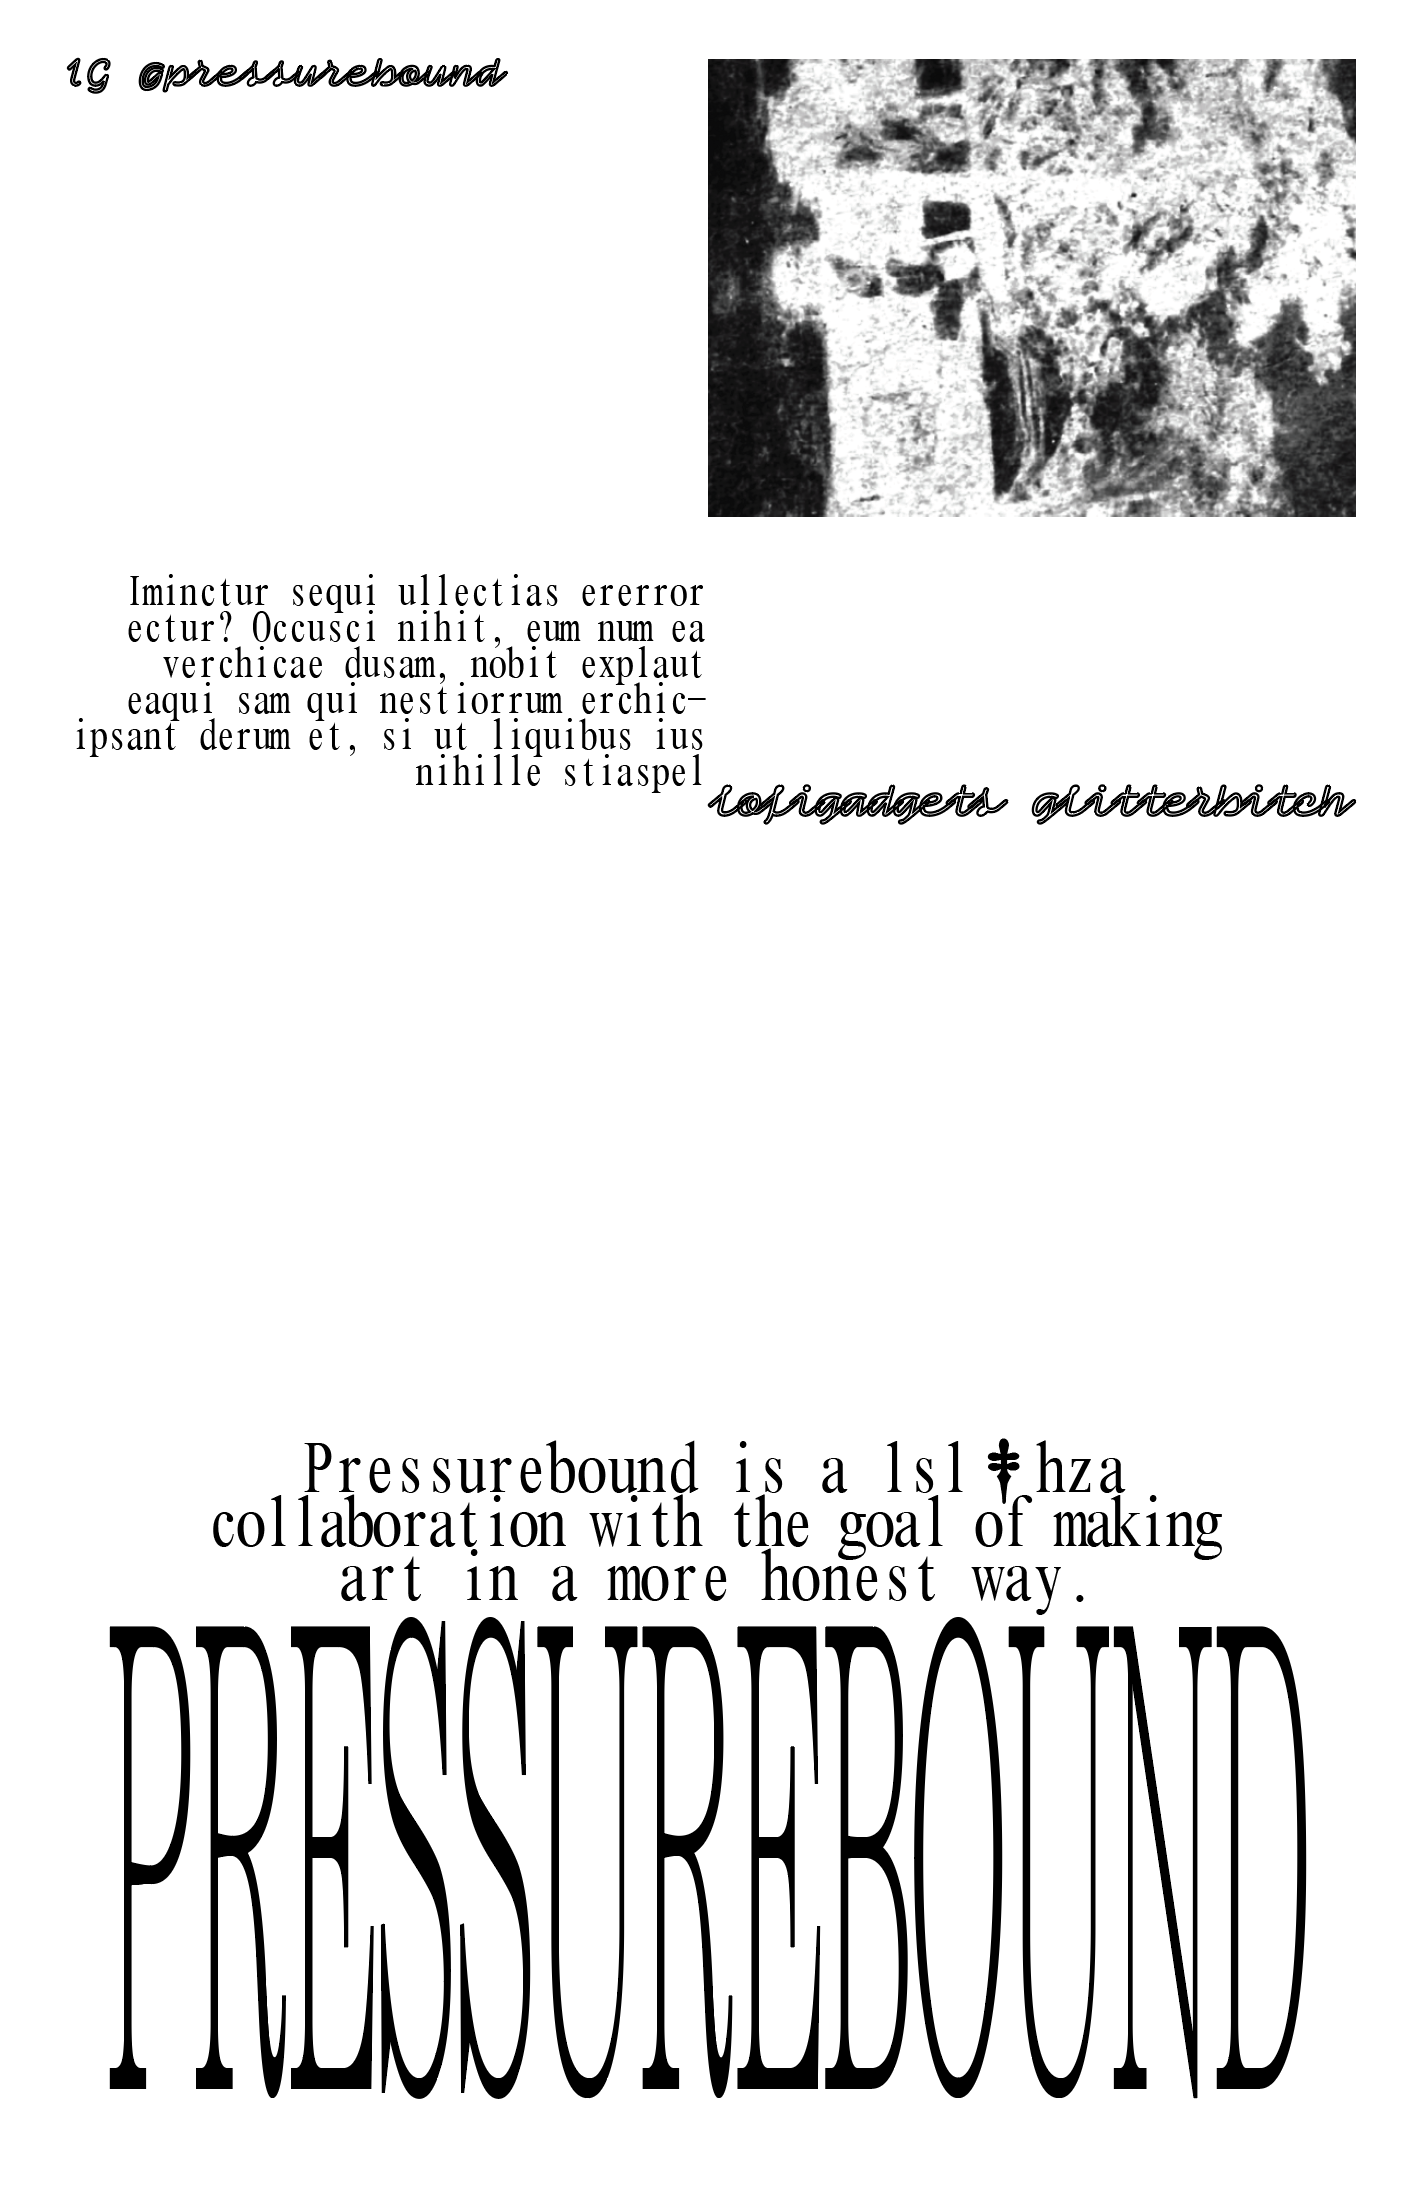 Screenshot of a draft of a poster, in black text/images on a white background. 'PRESSUREBOUND' stretched tall and narrow, with the text 'Pressurebound is a lsl & hza collaboration with the goal of making art in a more honest way.' (A dagger stands in for the & symbol.) sitting above it. There is an image and three other pieces of text anchored at the top of the composition.